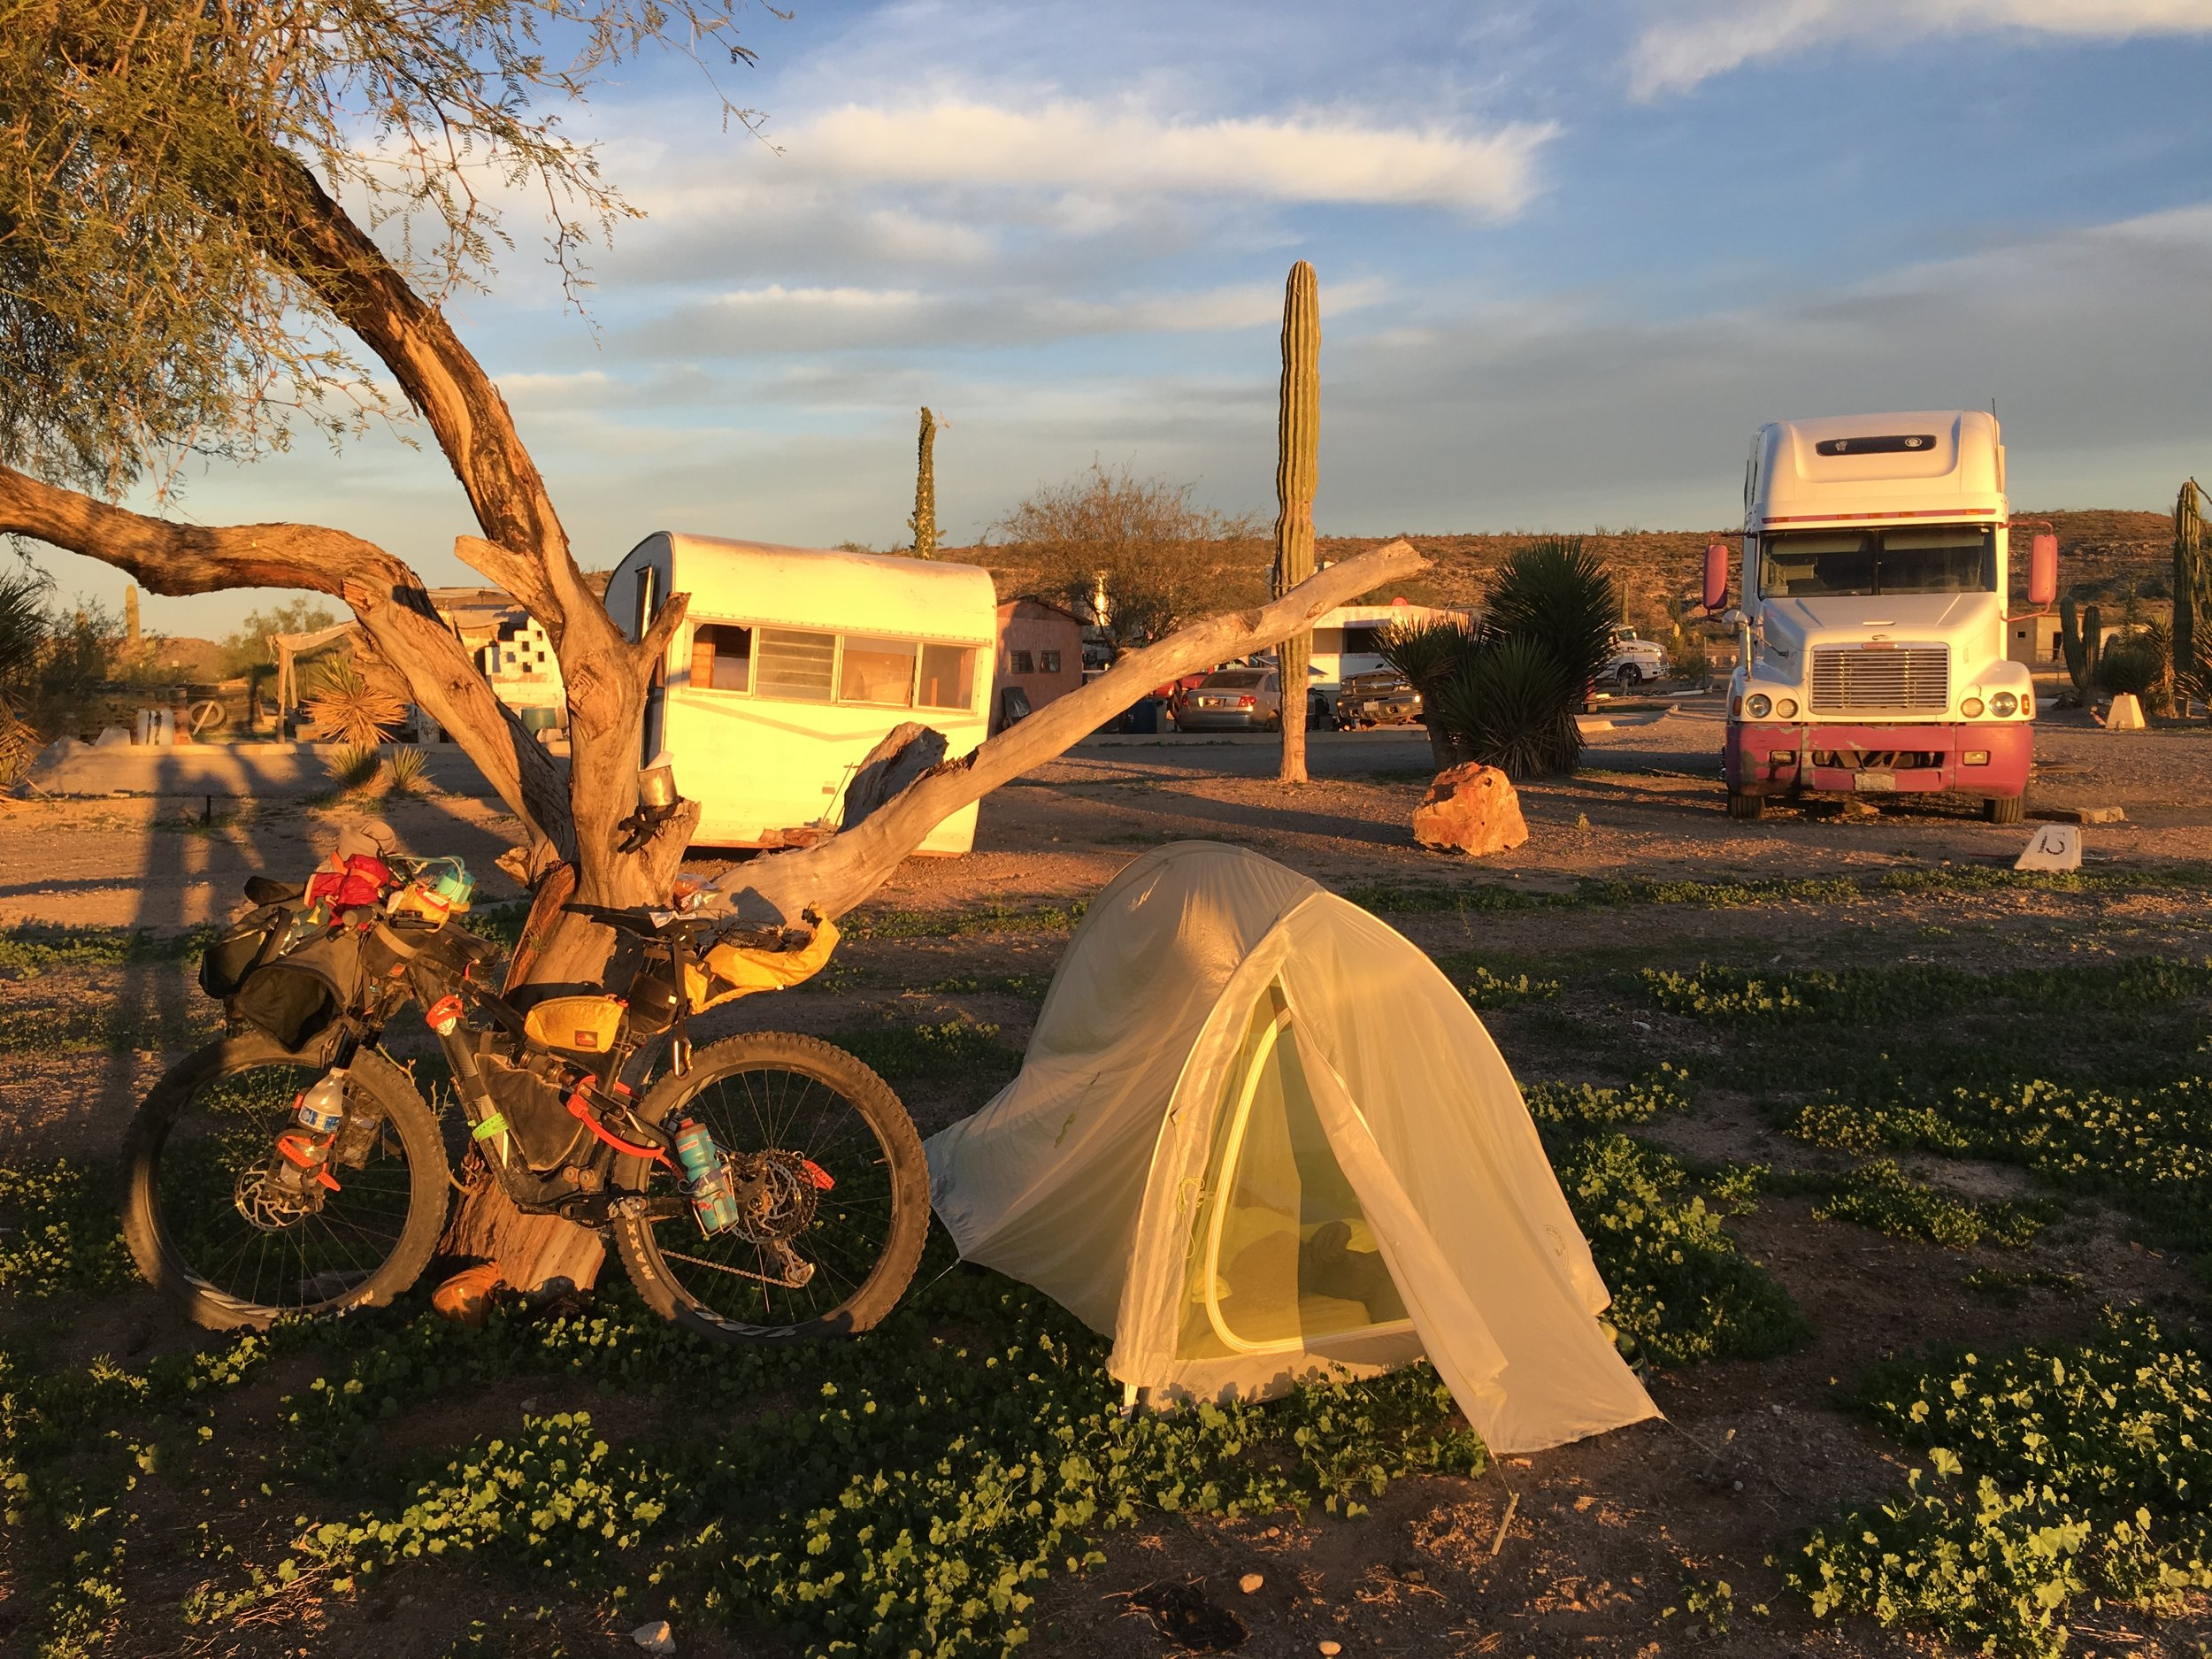 Abandoned truck stop campground